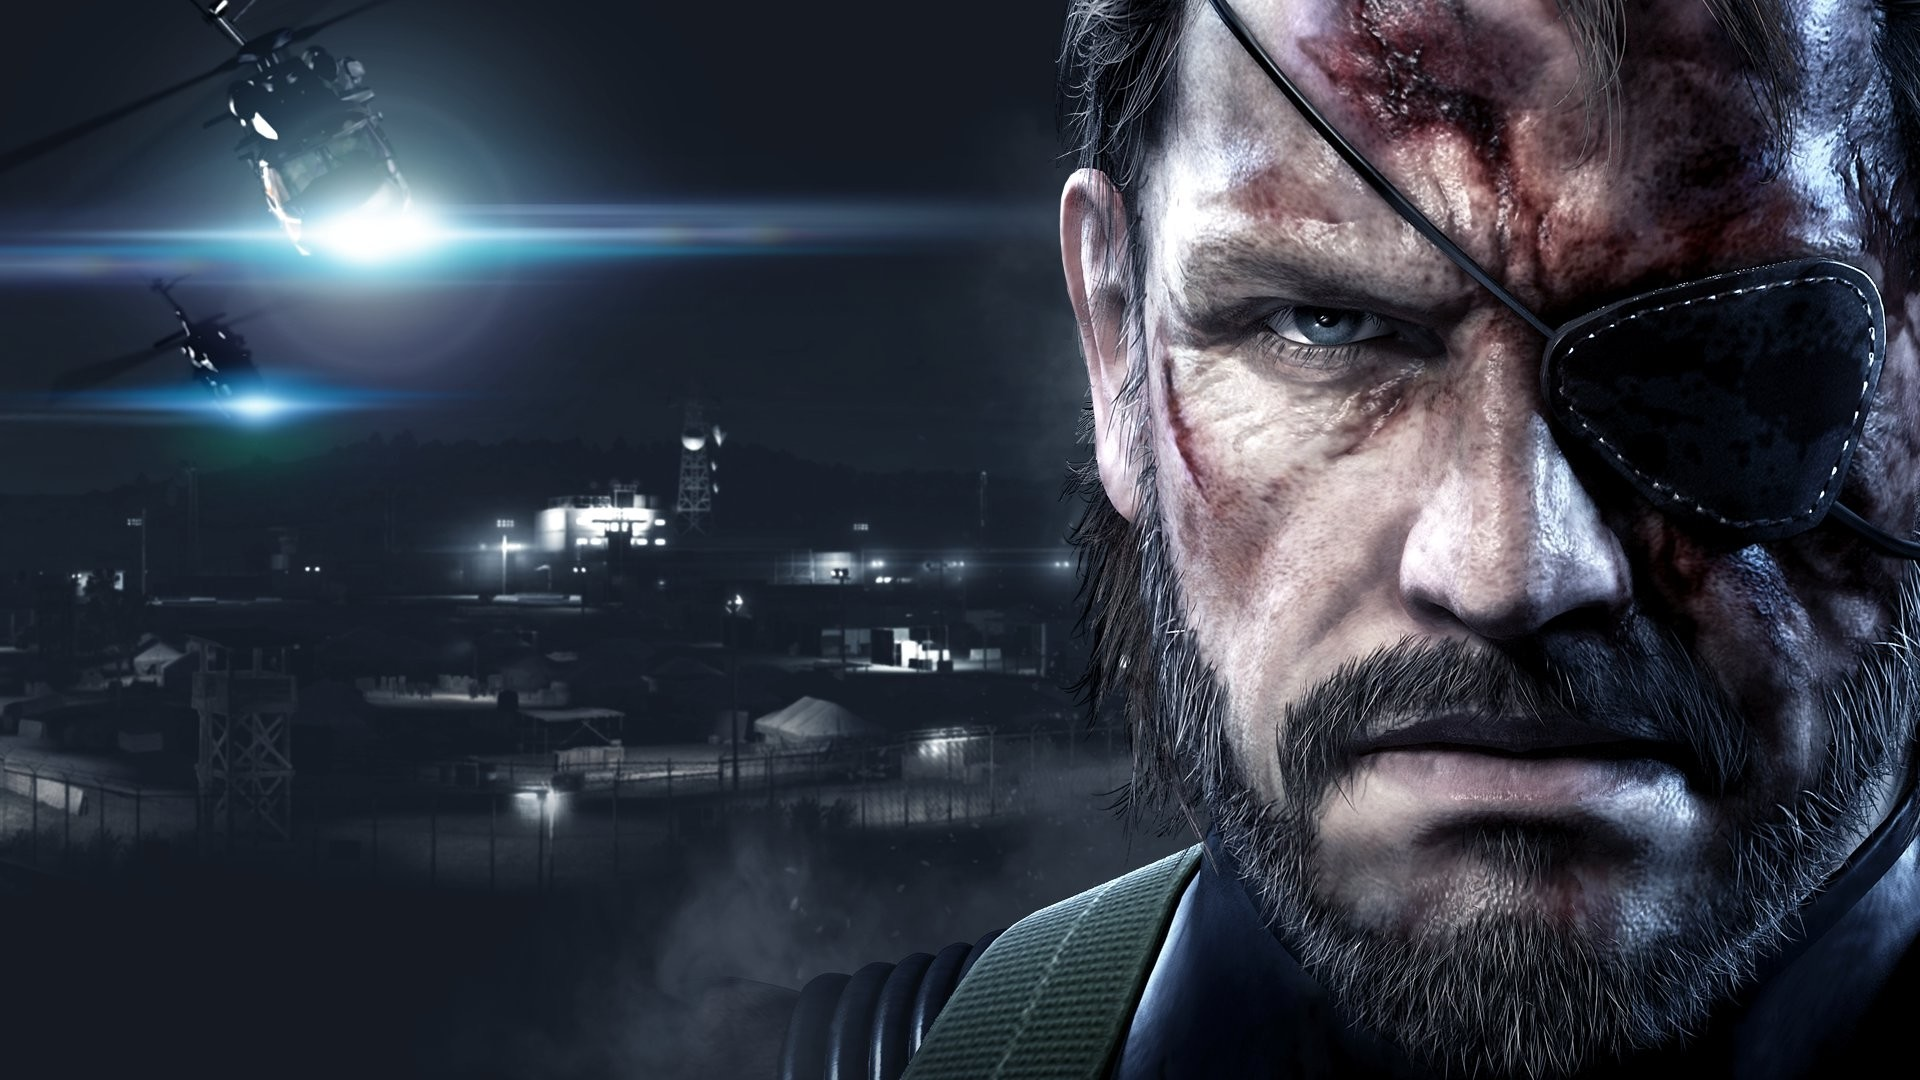 This is metal gear solid for anyone that doesn't know.